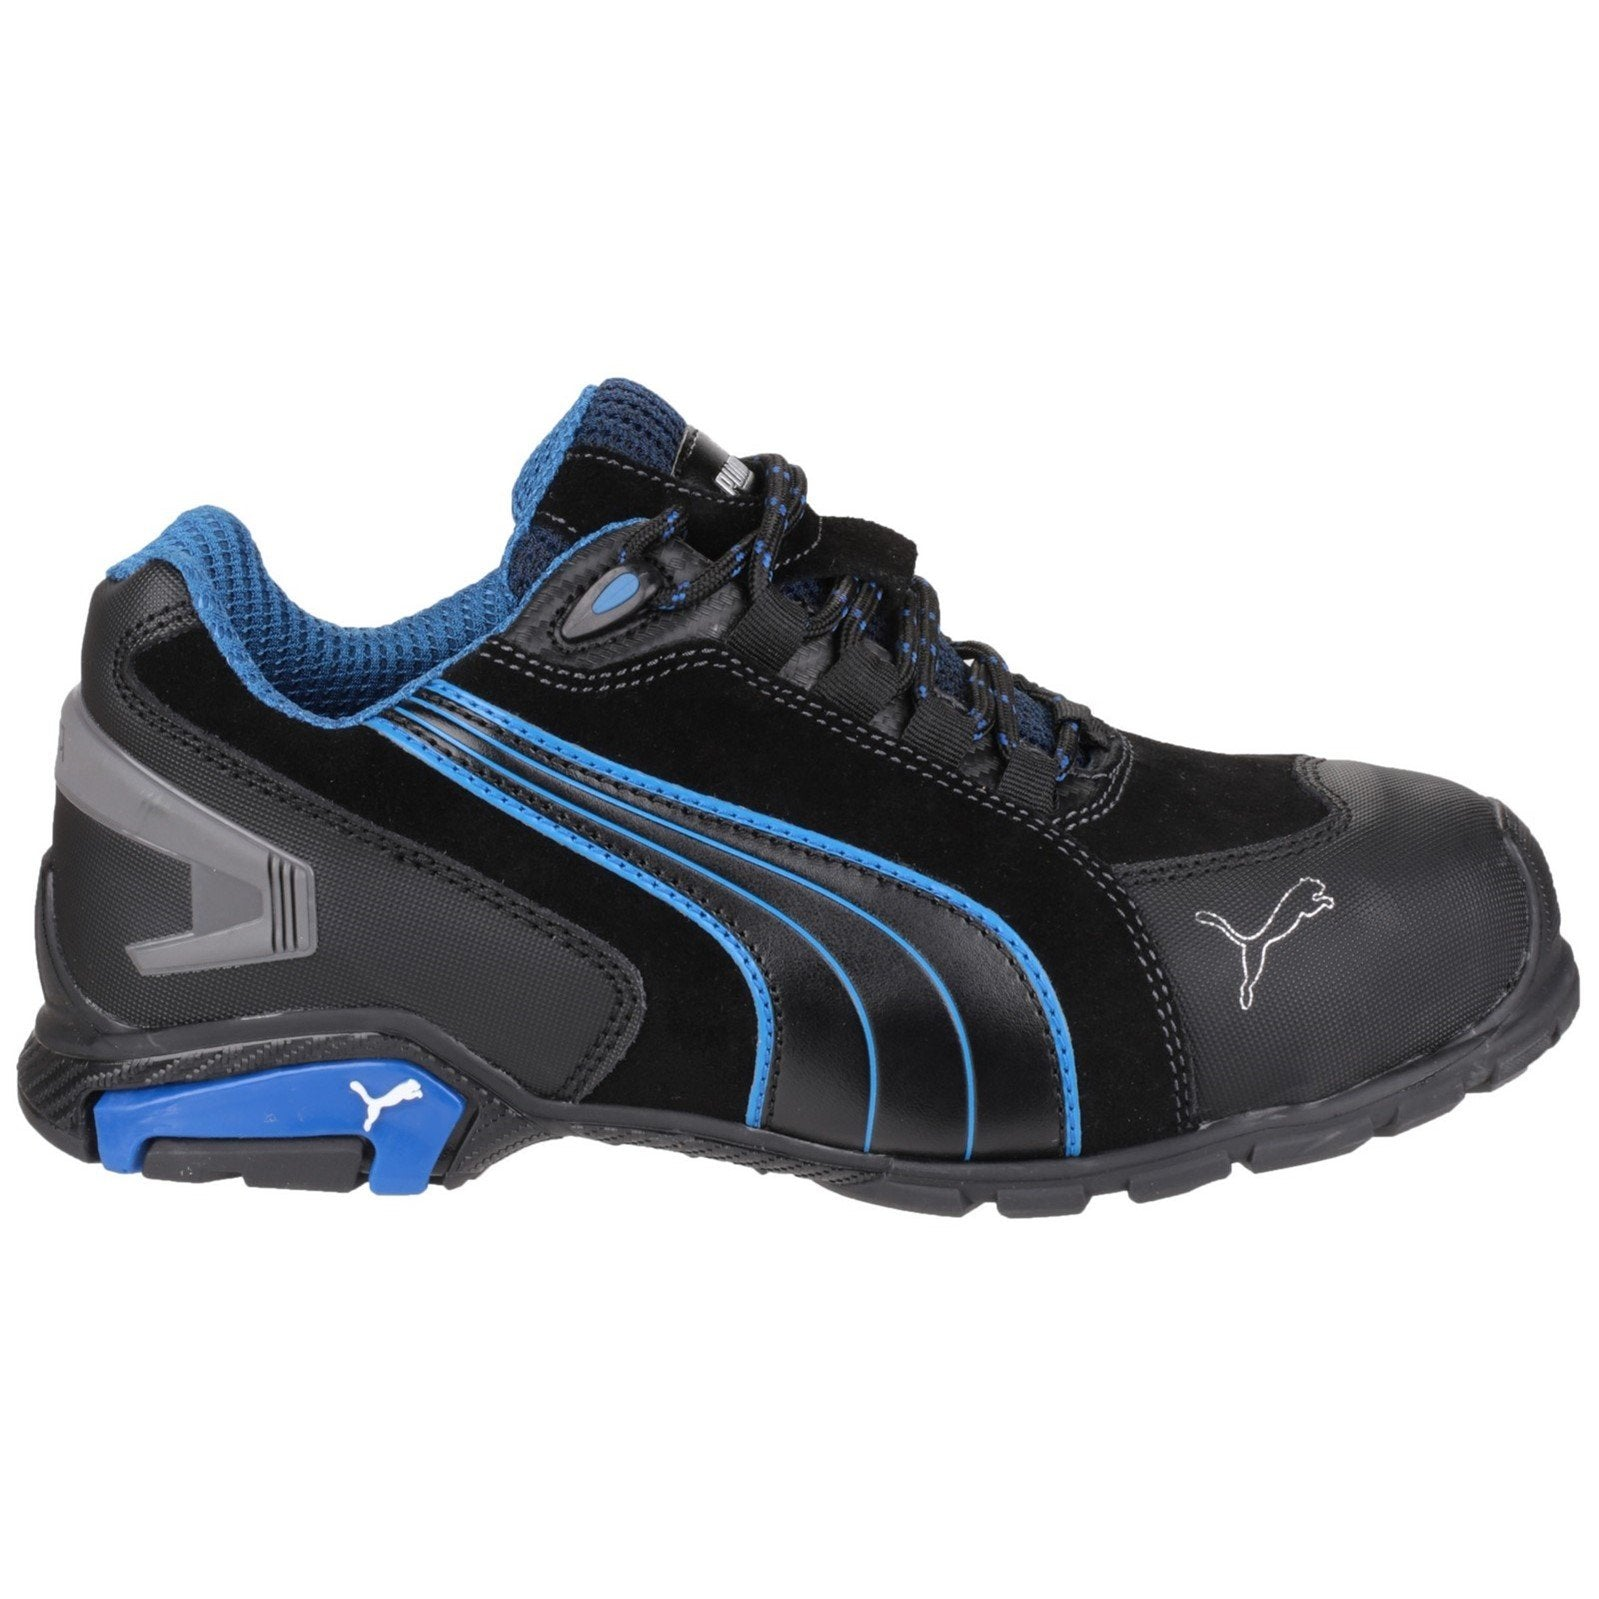 Puma Safety Rio Low Trainers